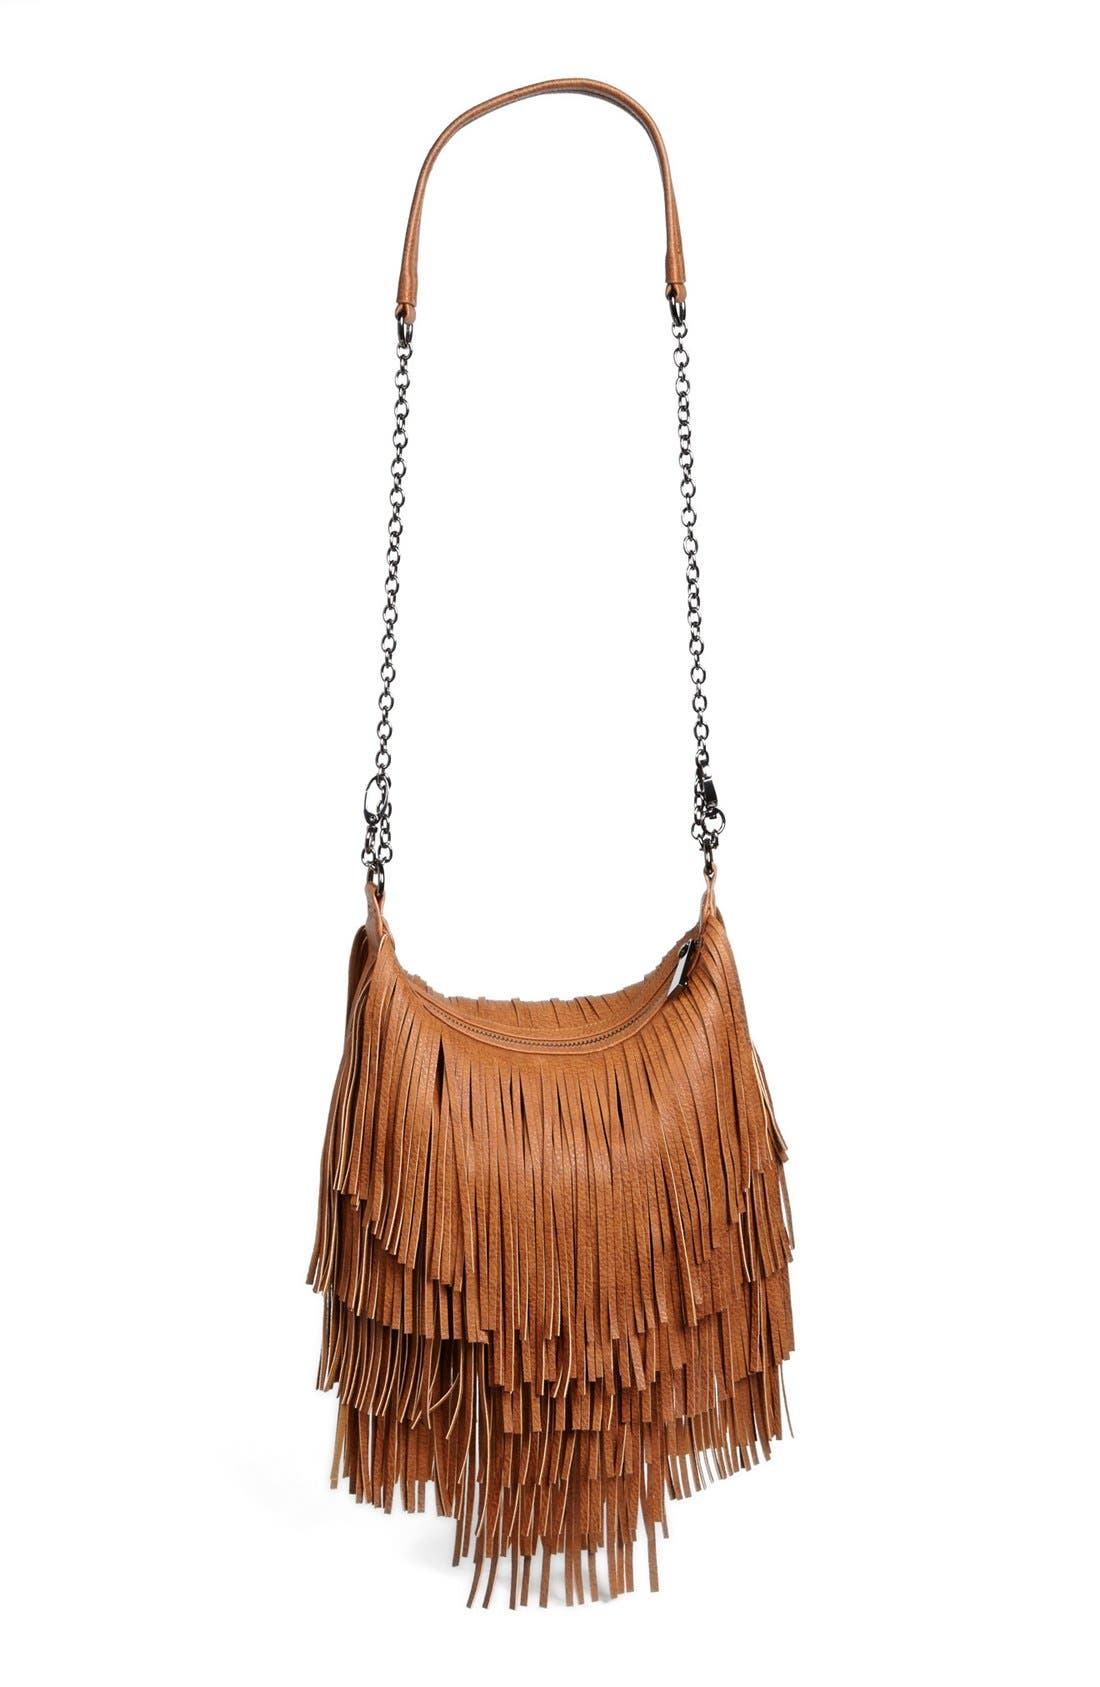 Alternate Image 1 Selected - Steve Madden 'Bmocha' Fringe Crossbody Bag